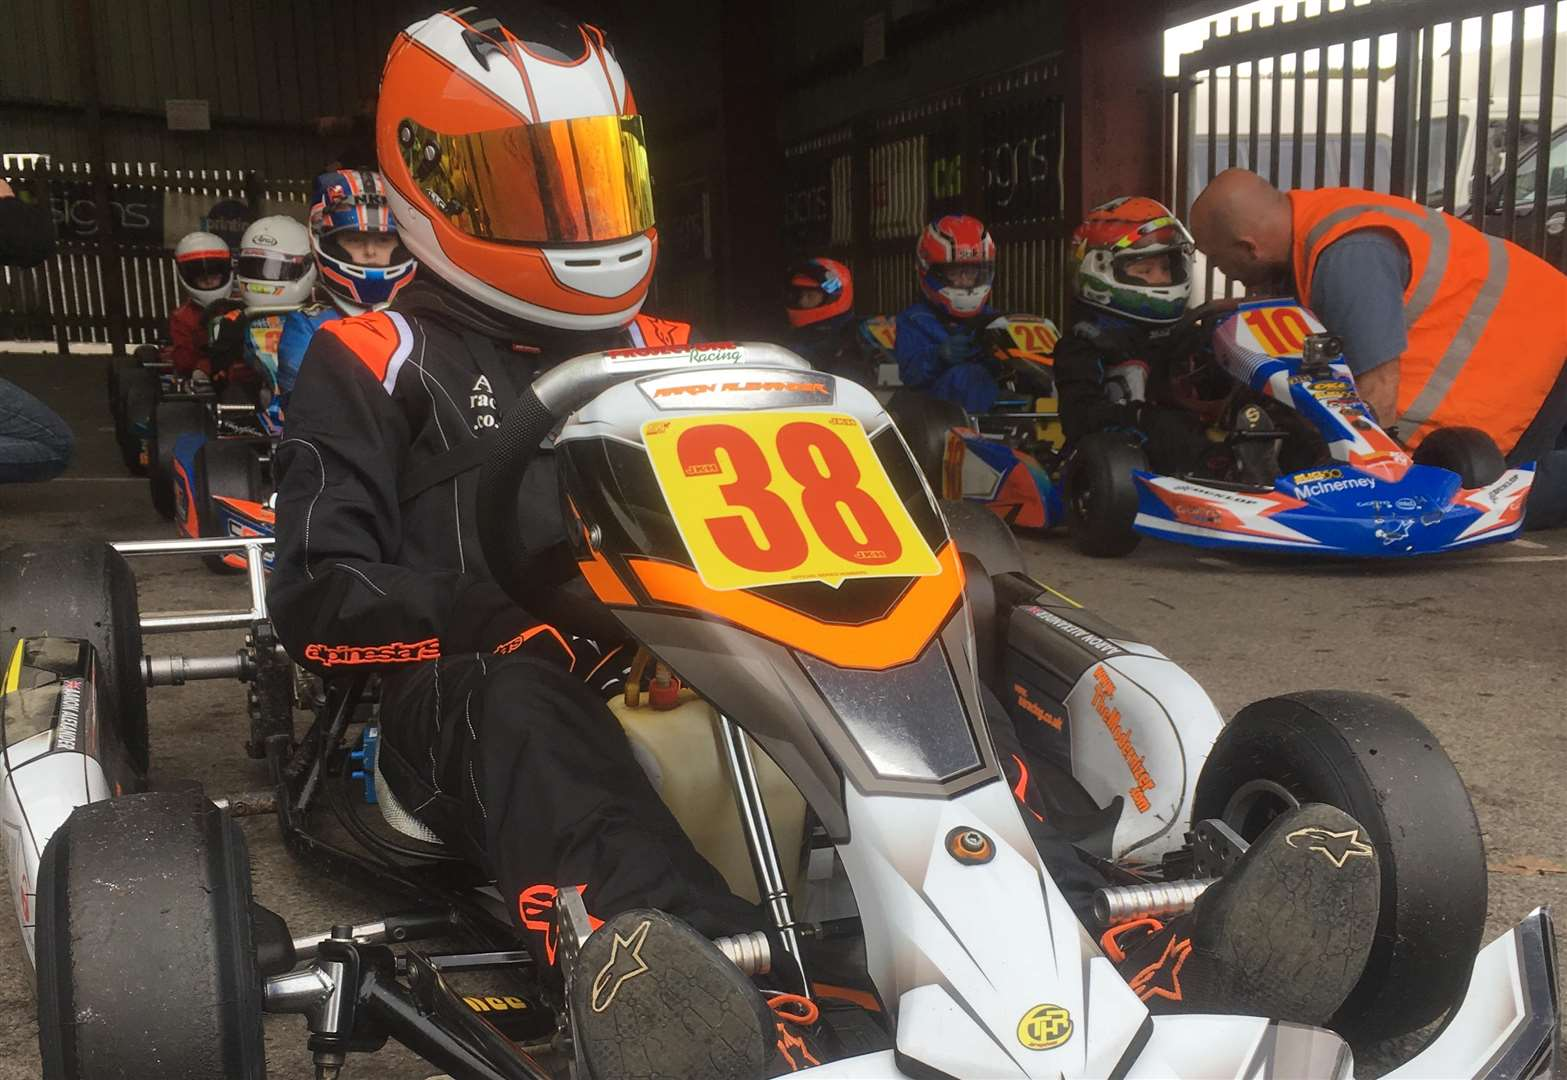 West Norfolk karting ace bags more success